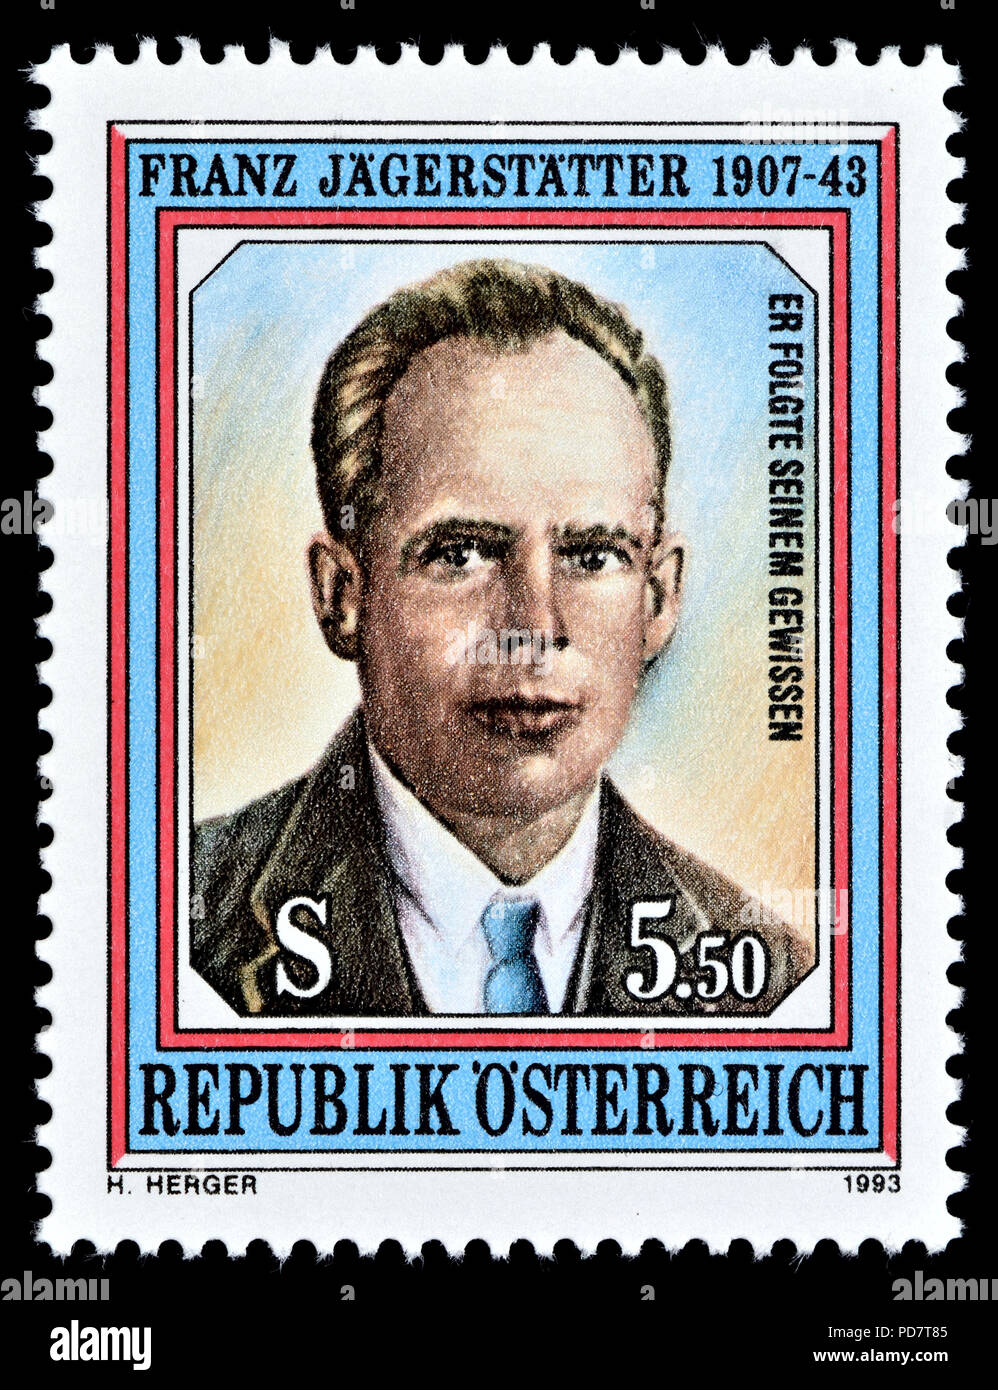 Austrian postage stamp (1993) : Franz Jägerstätter (born Franz Huber 1907 –1943) Austrian conscientious objector during World War II. Sentenced to..... - Stock Image